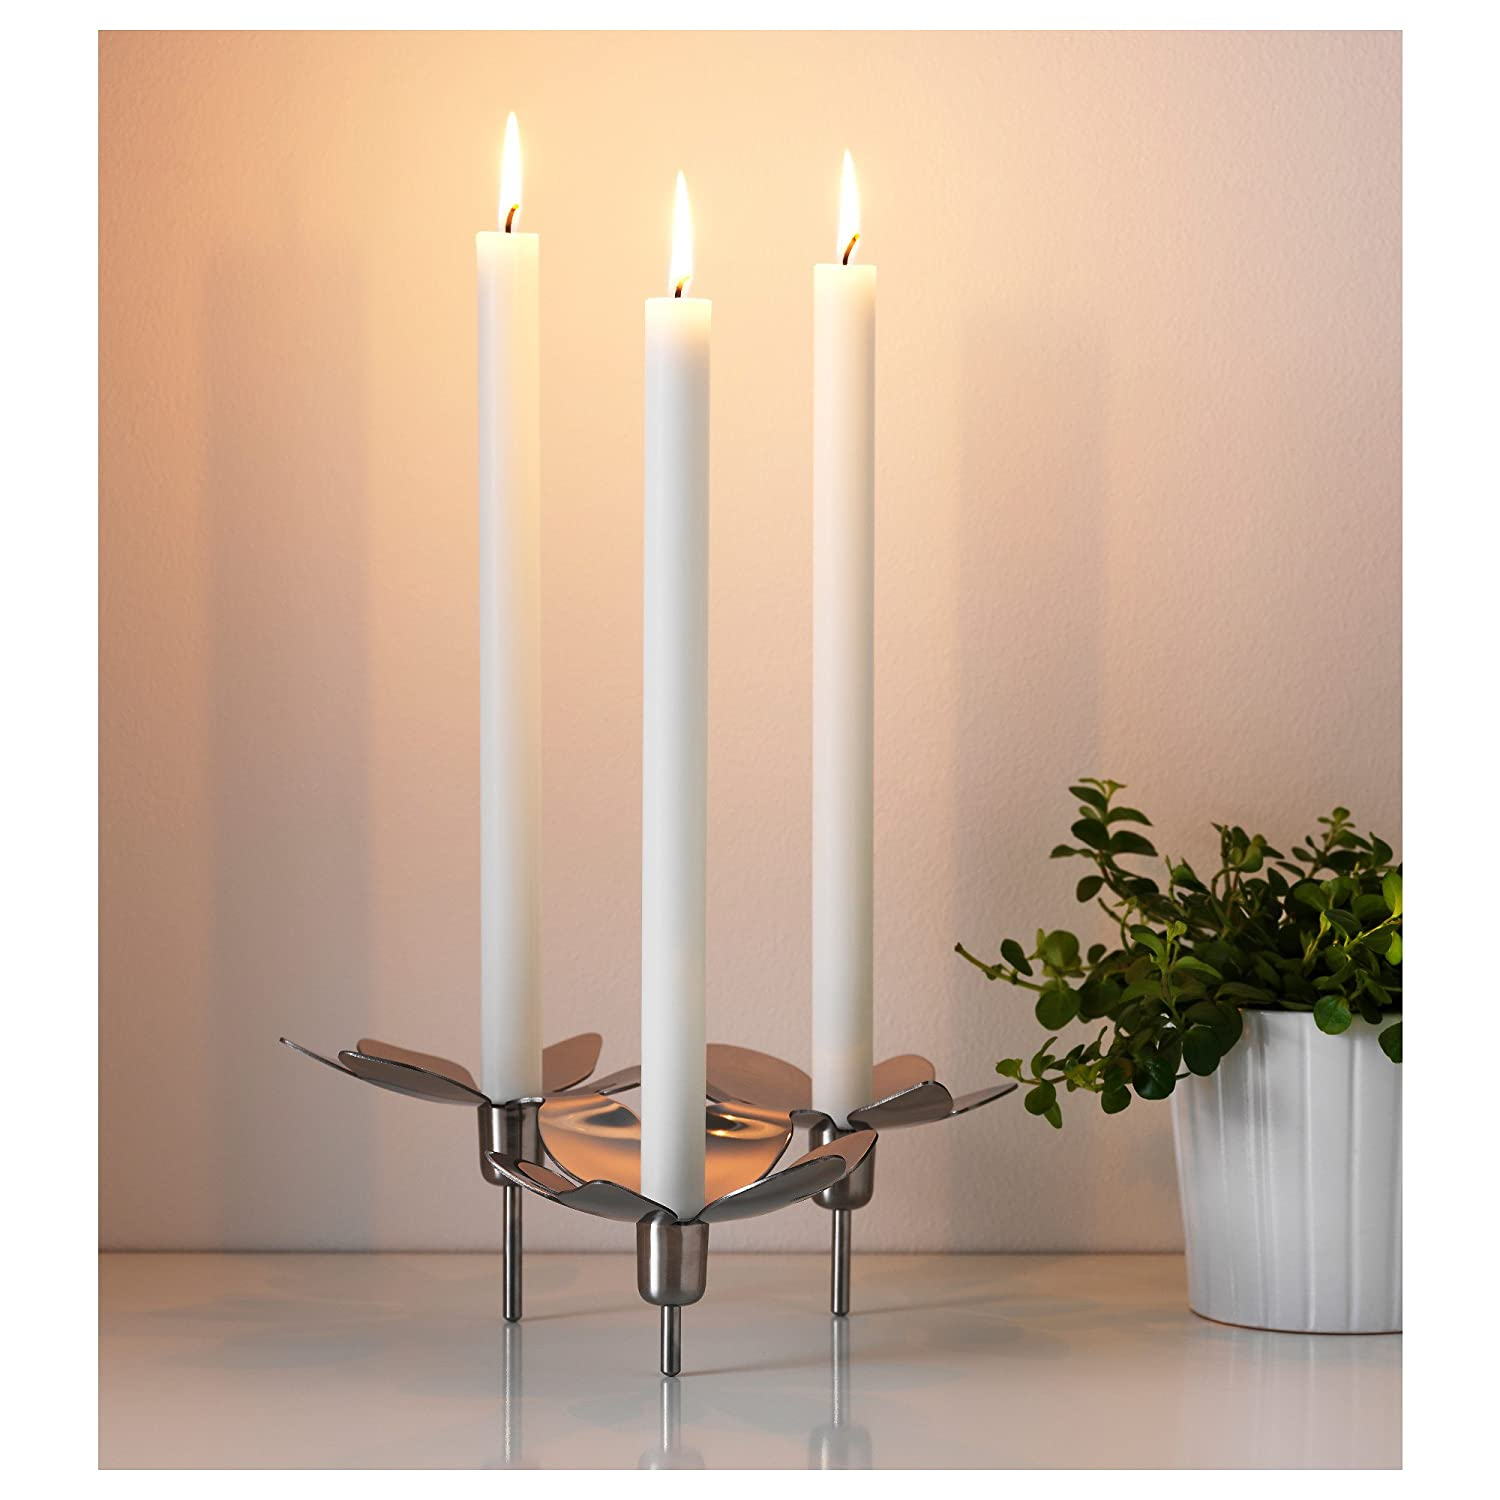 Collectibles Ikea Stockholm Candlestick For 3 Candles Stainless Steel Free Shipping